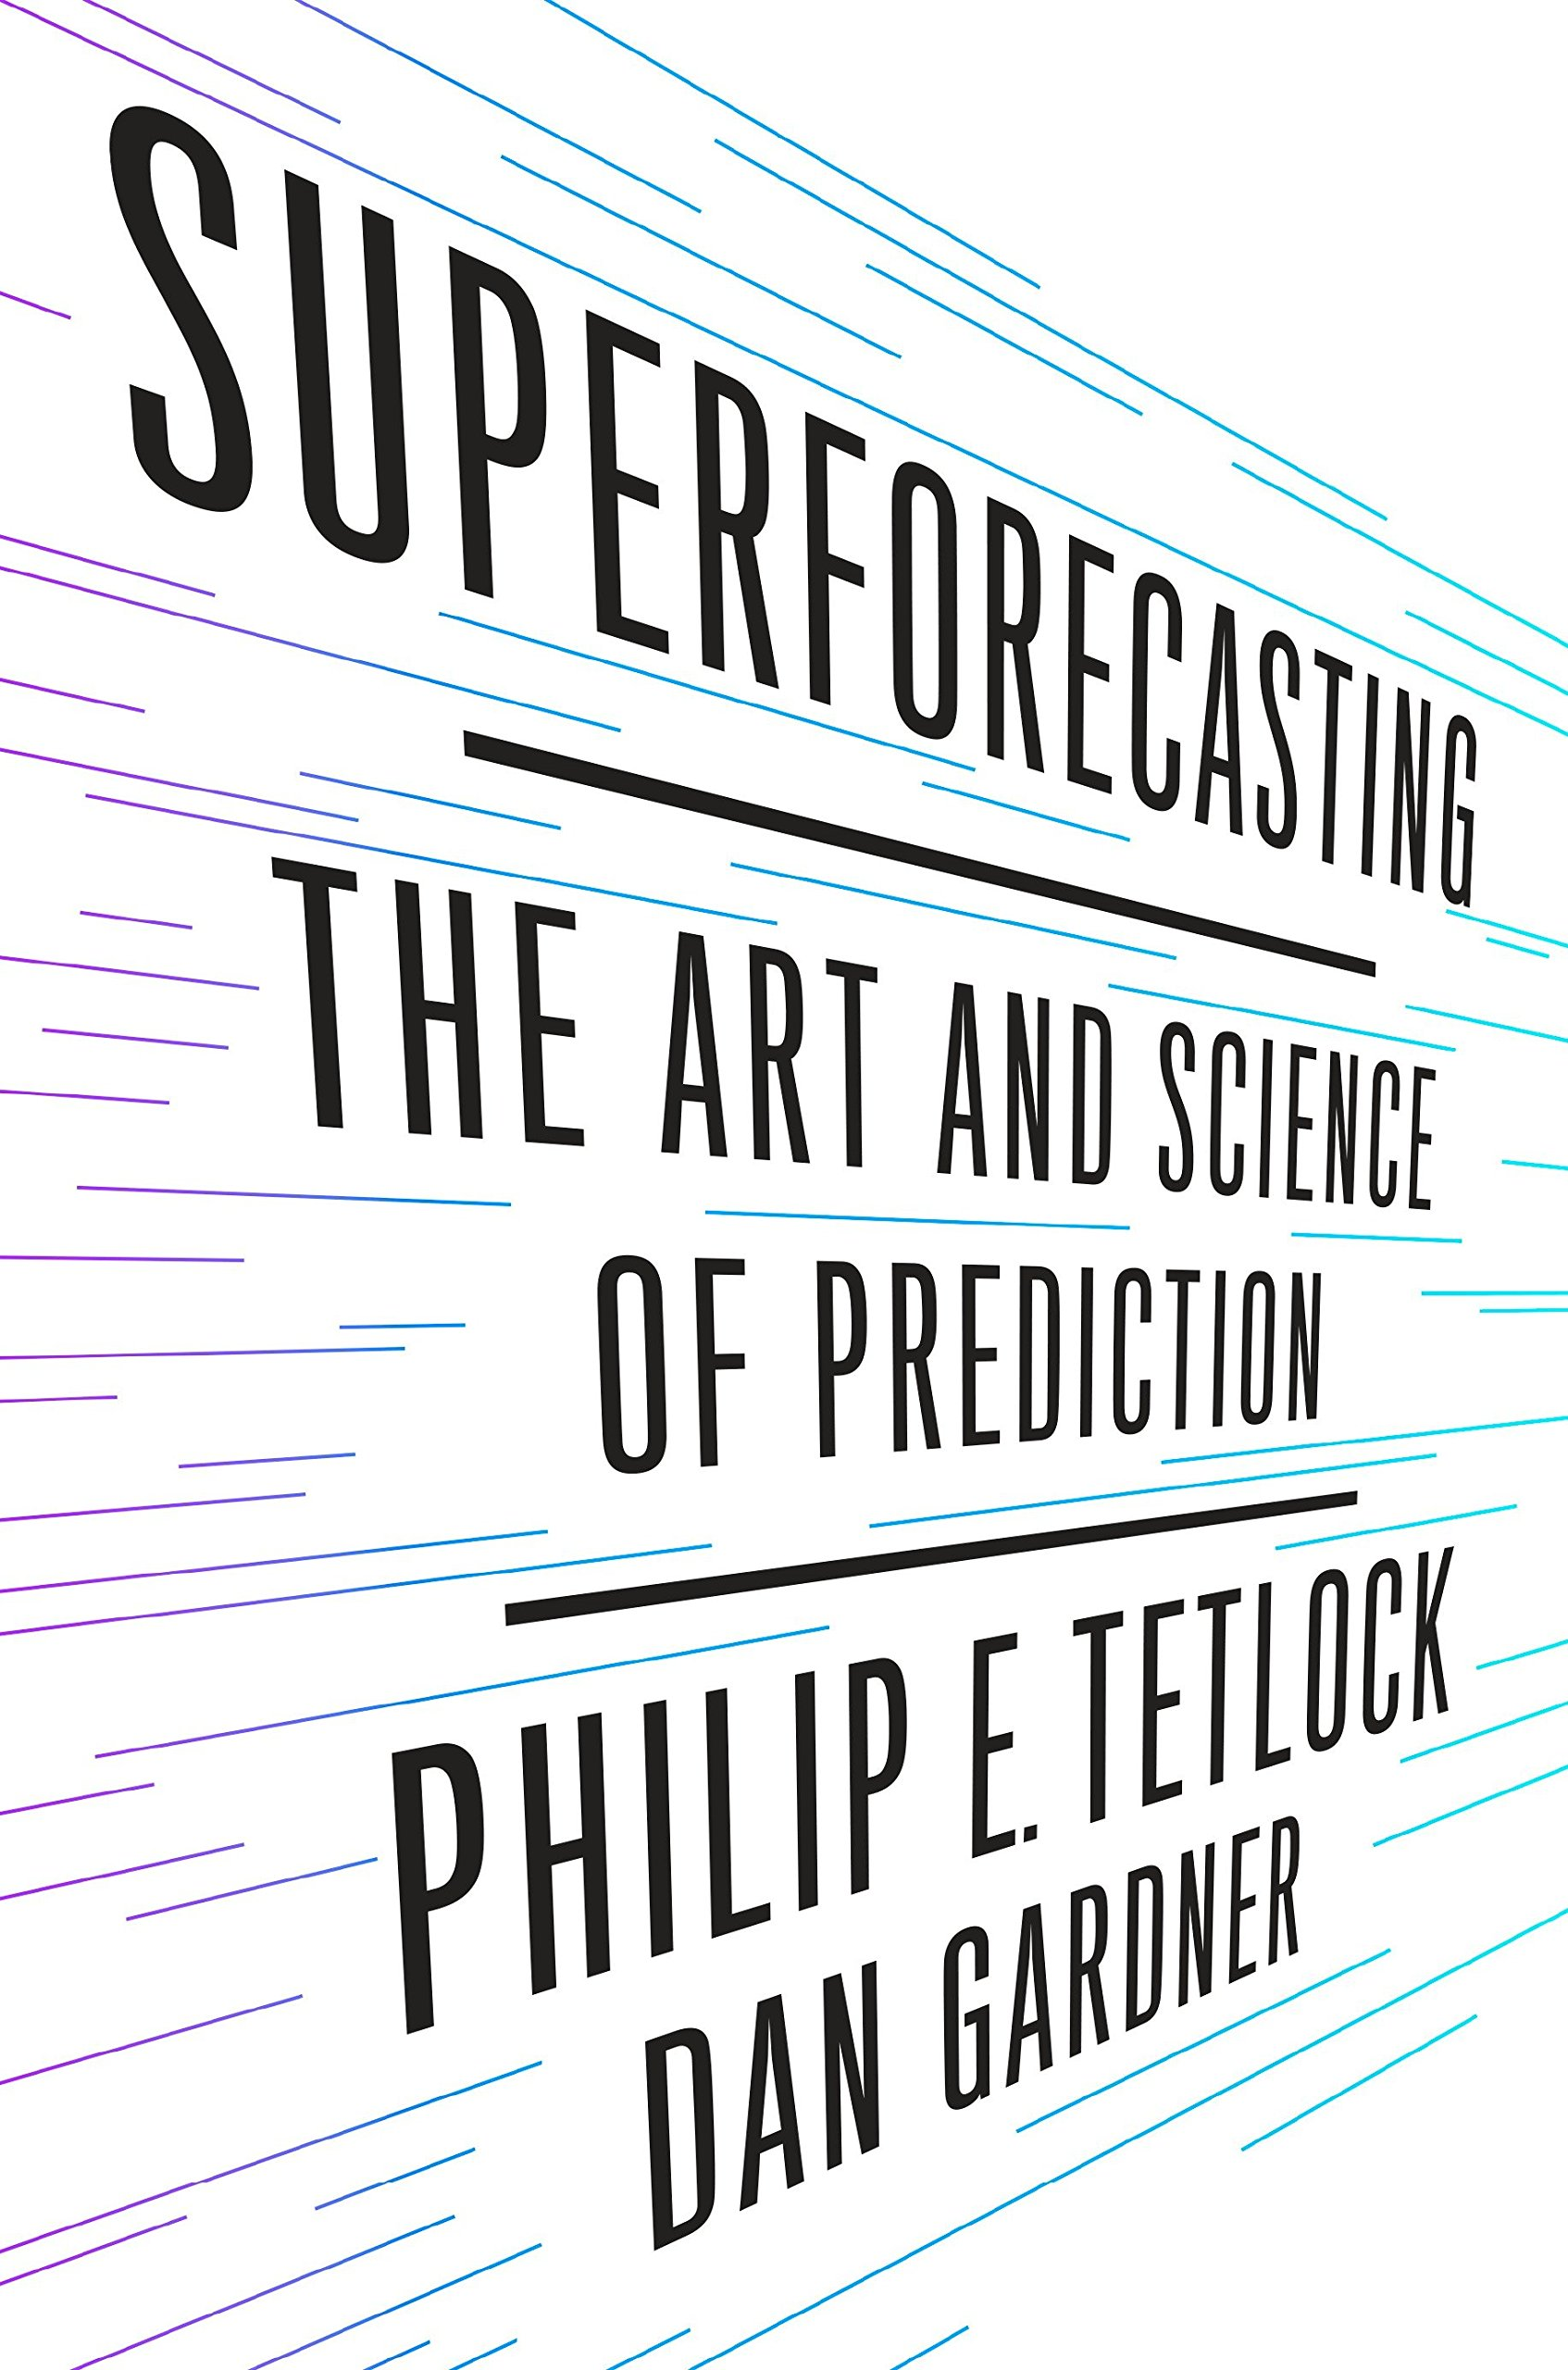 Superforecasting The Art And Science Of Prediction Amazon De